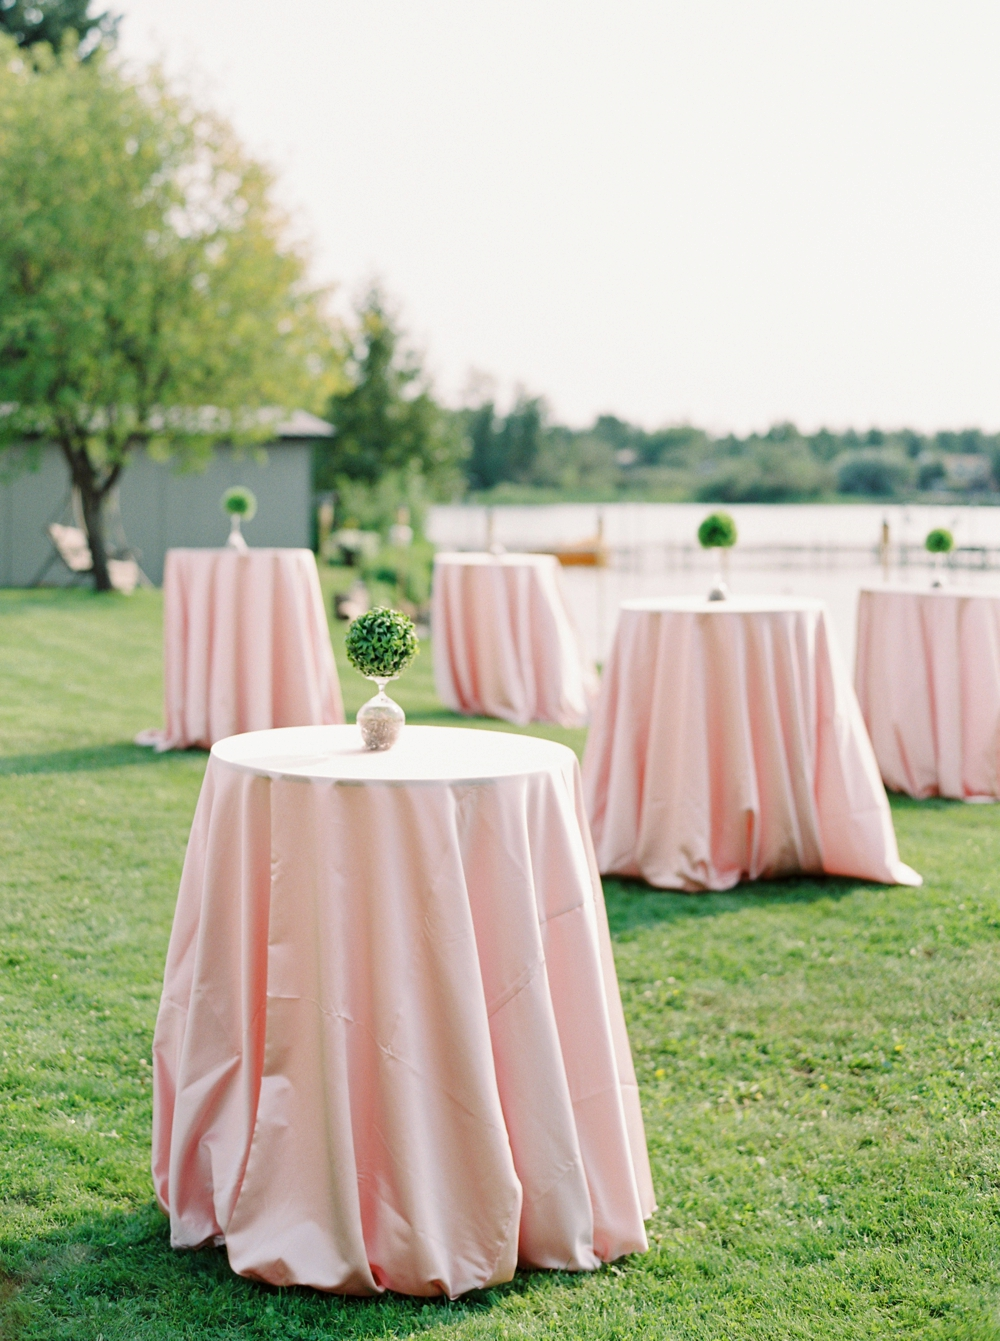 Edmonton Wedding Photographers | Cocktail table decor Wizard Lake | Justine Milton Fine Art Film Photography